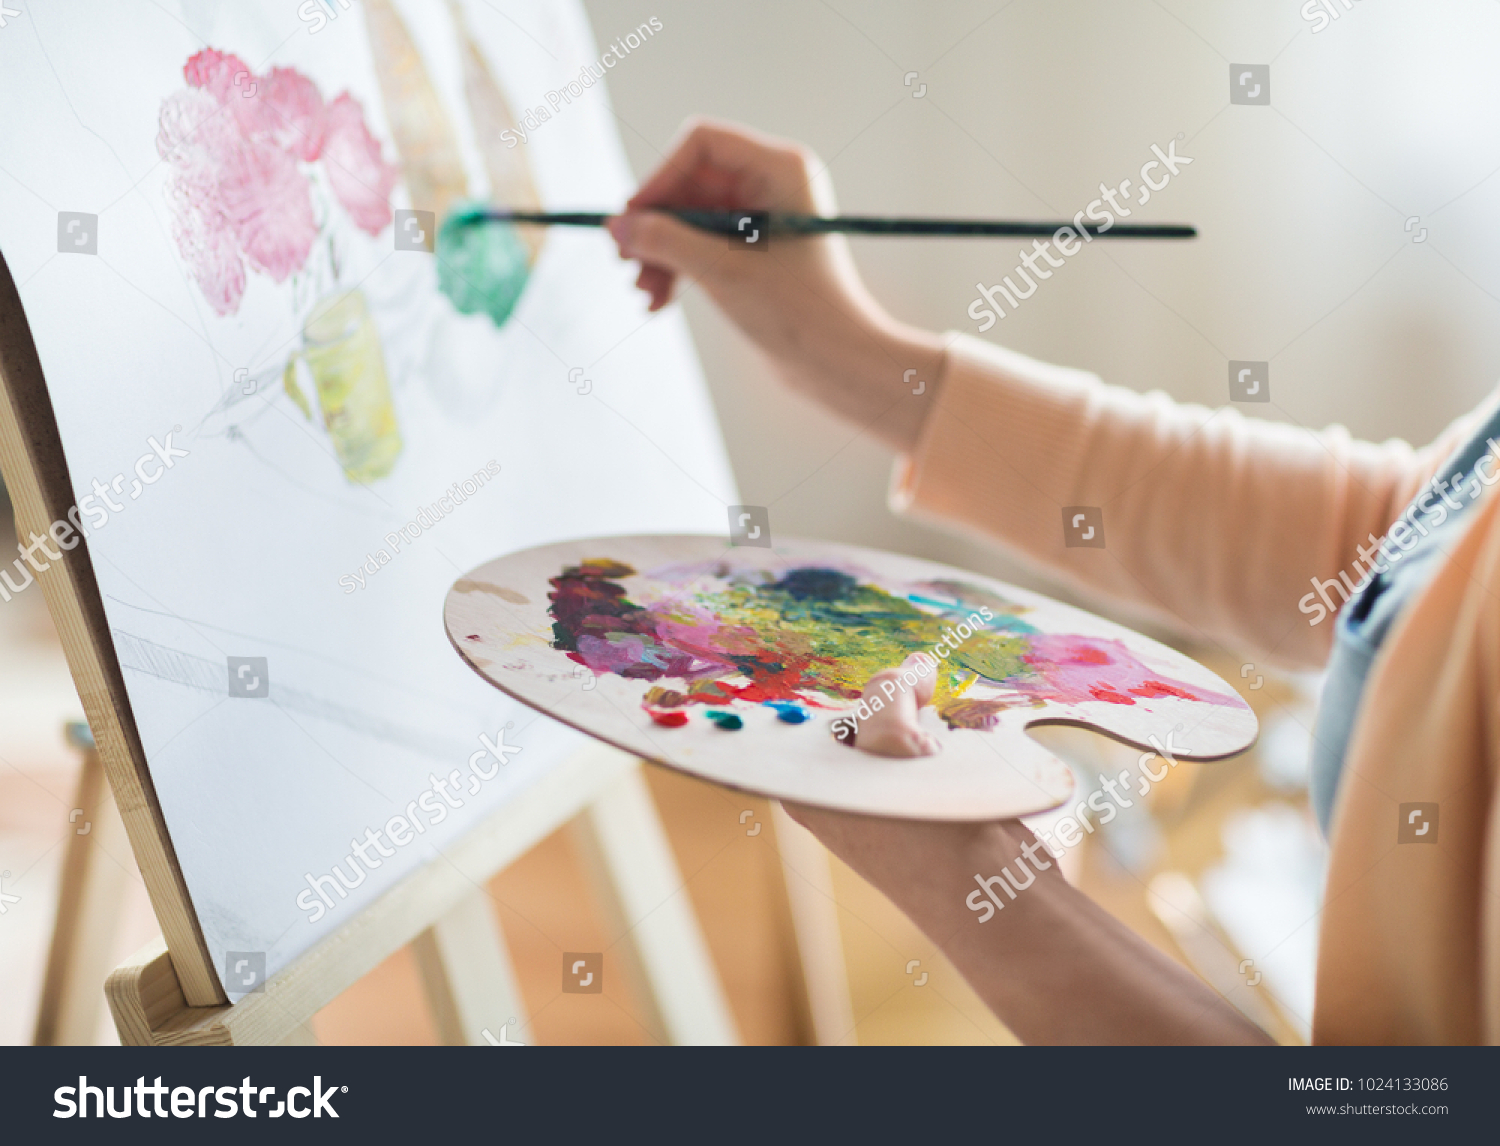 art, creativity and people concept - close up of artist with palette and brush painting still life on paper at studio #1024133086